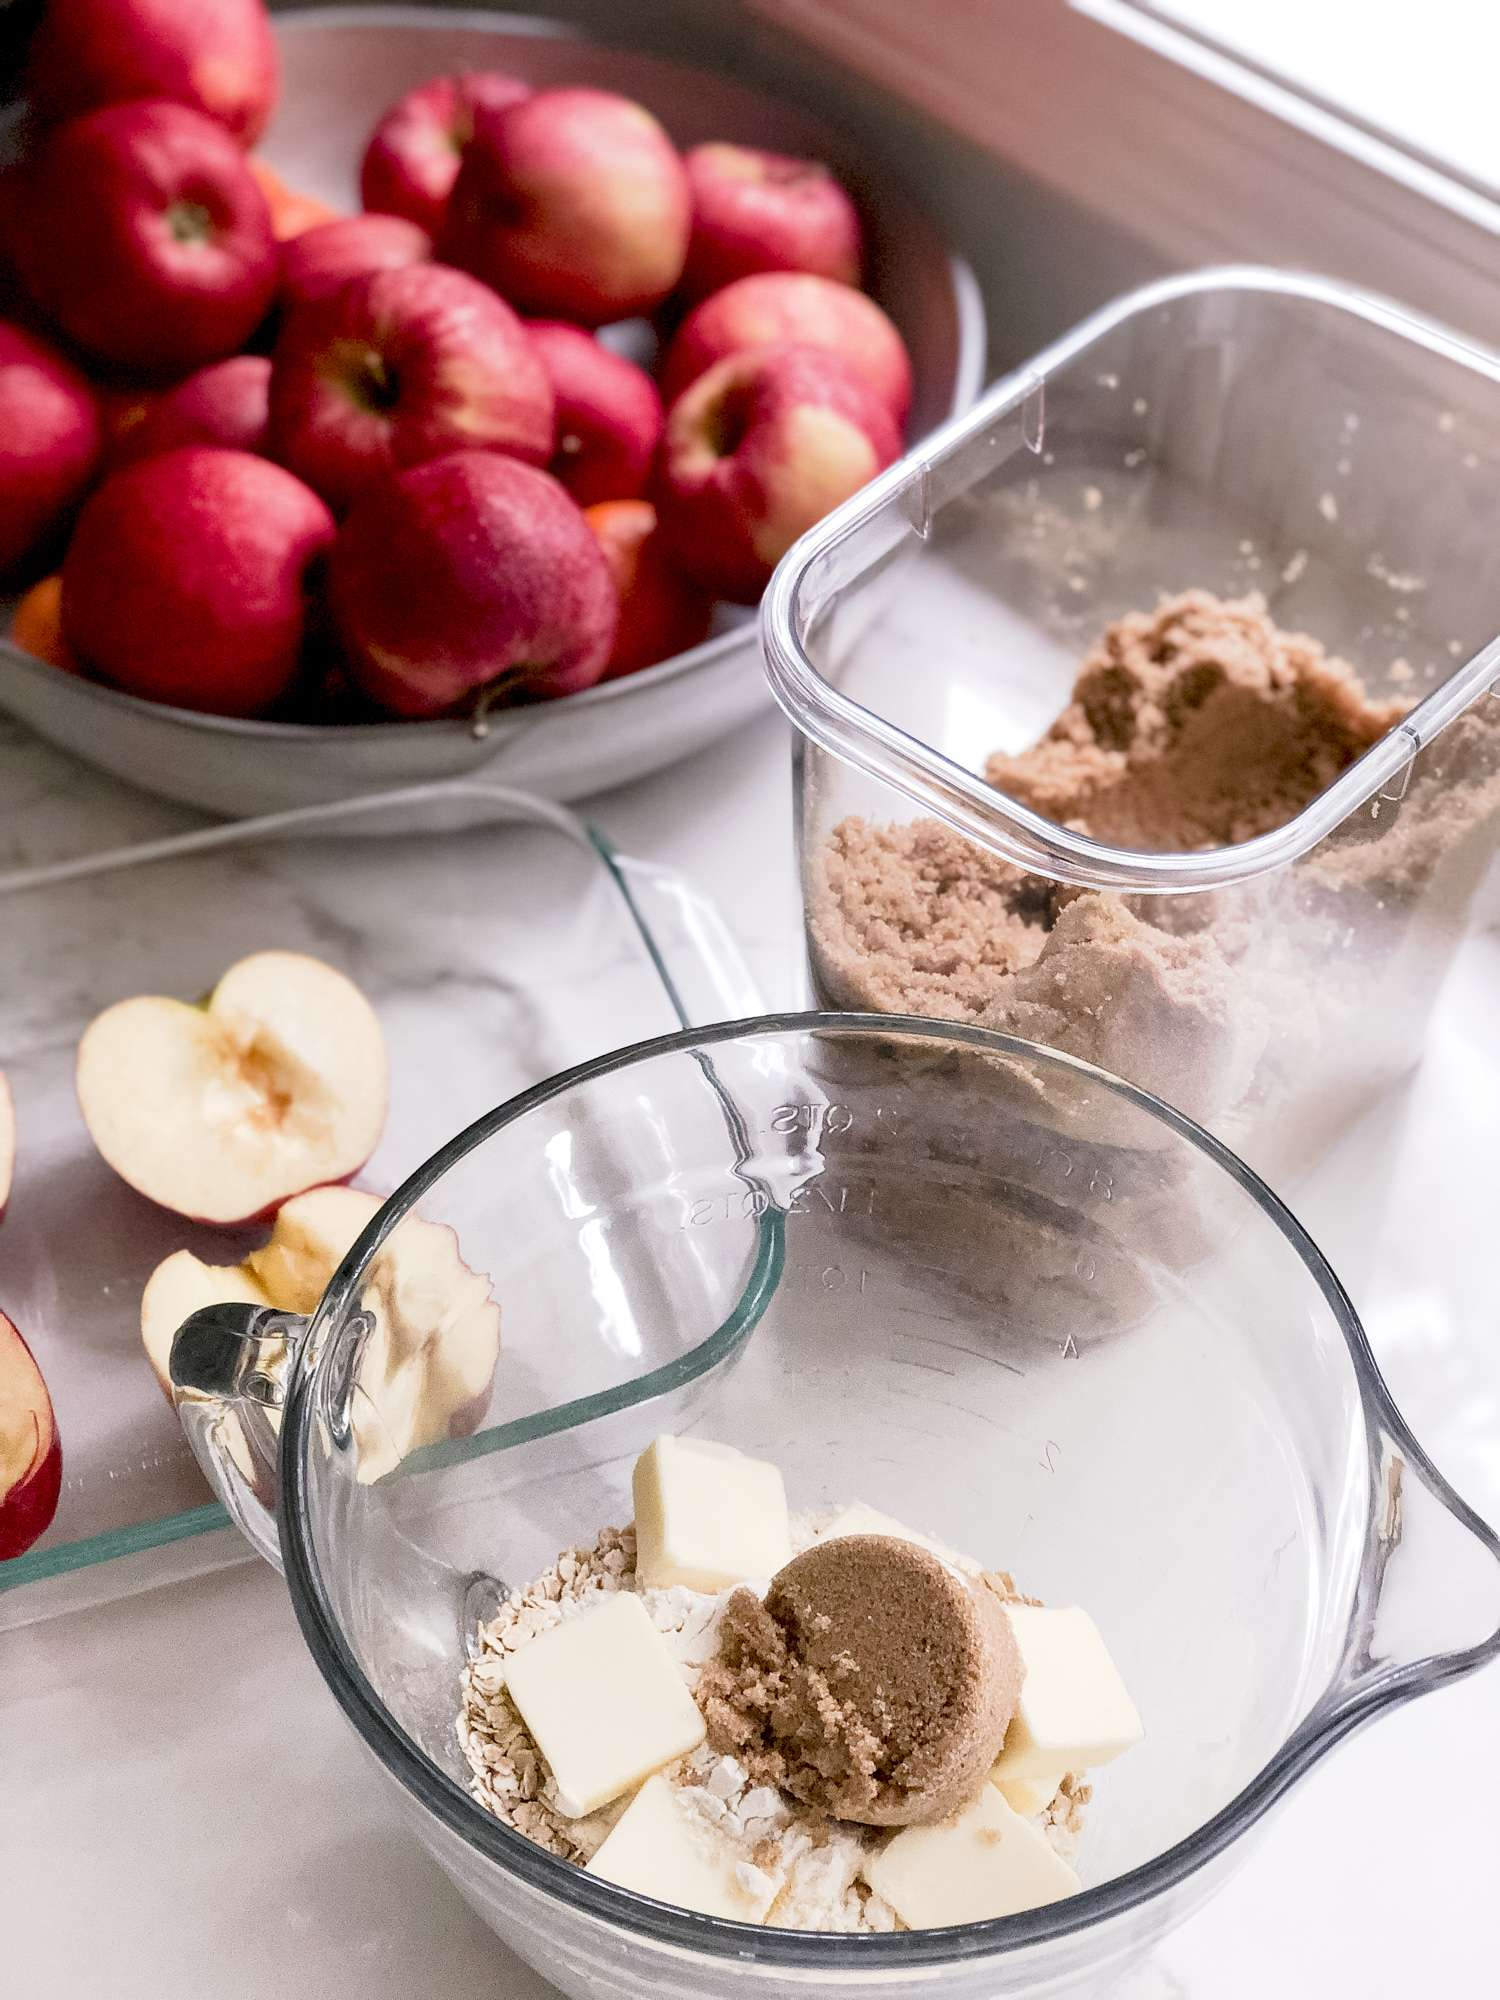 Baked apple recipe prep